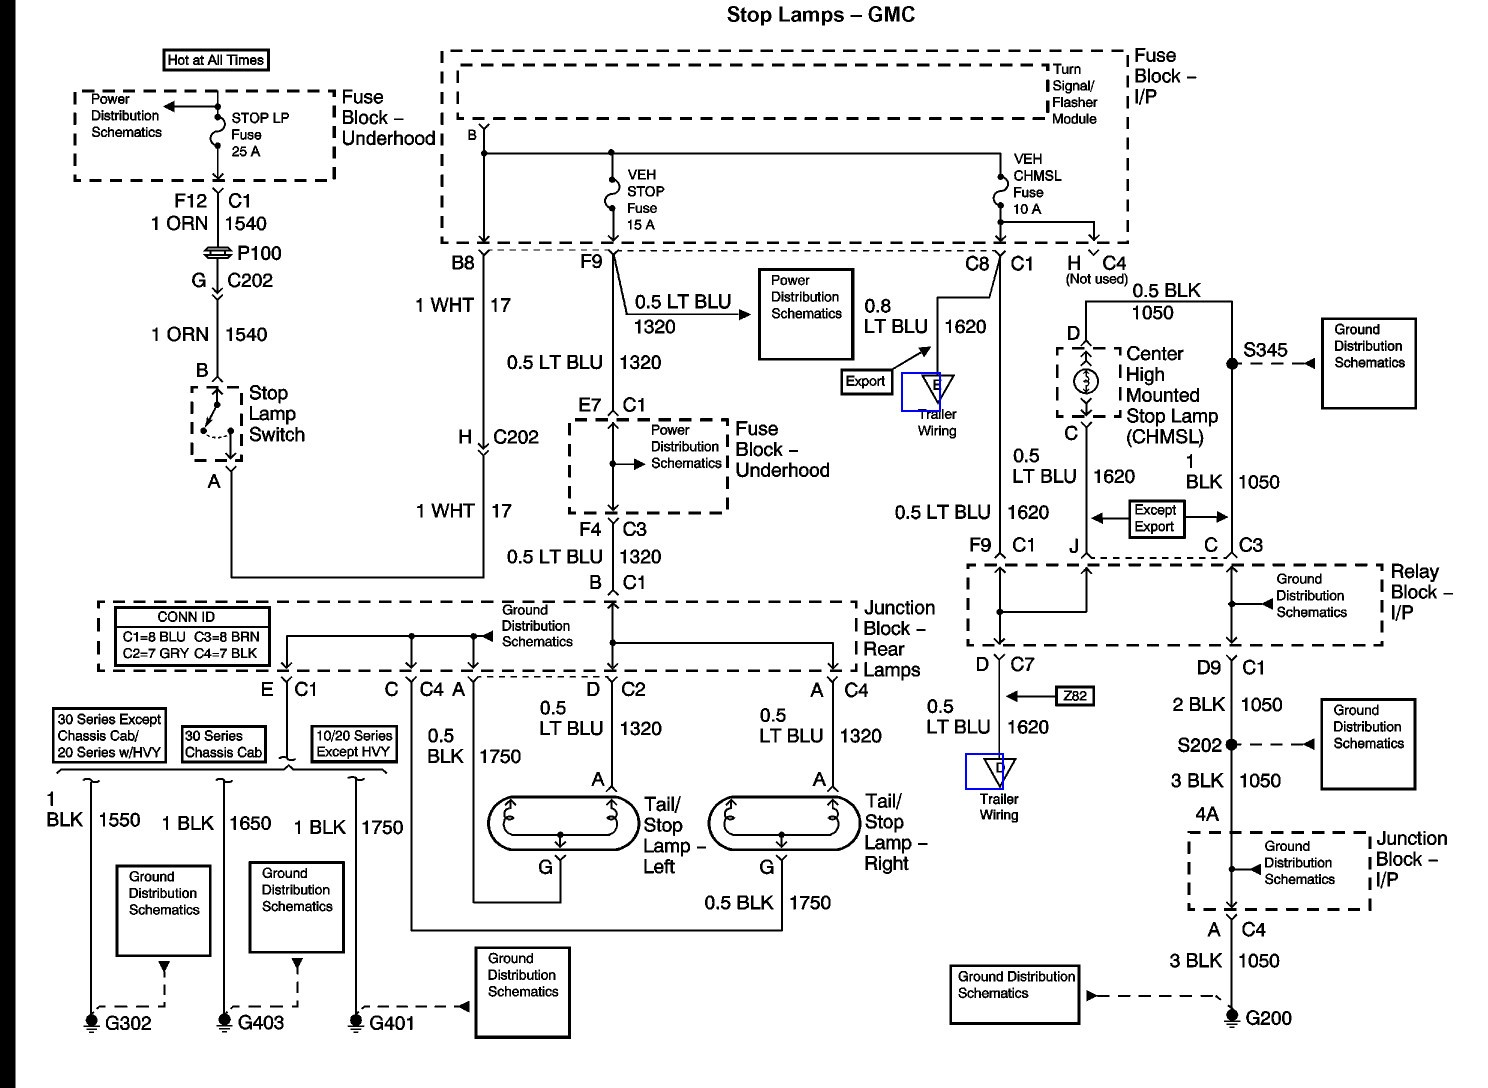 DIAGRAM] 2001 Chevy C6500 Wiring Diagram FULL Version HD Quality Wiring  Diagram - DIAGRAM-EX.ARTEMISMAIL.FRDiagram Database